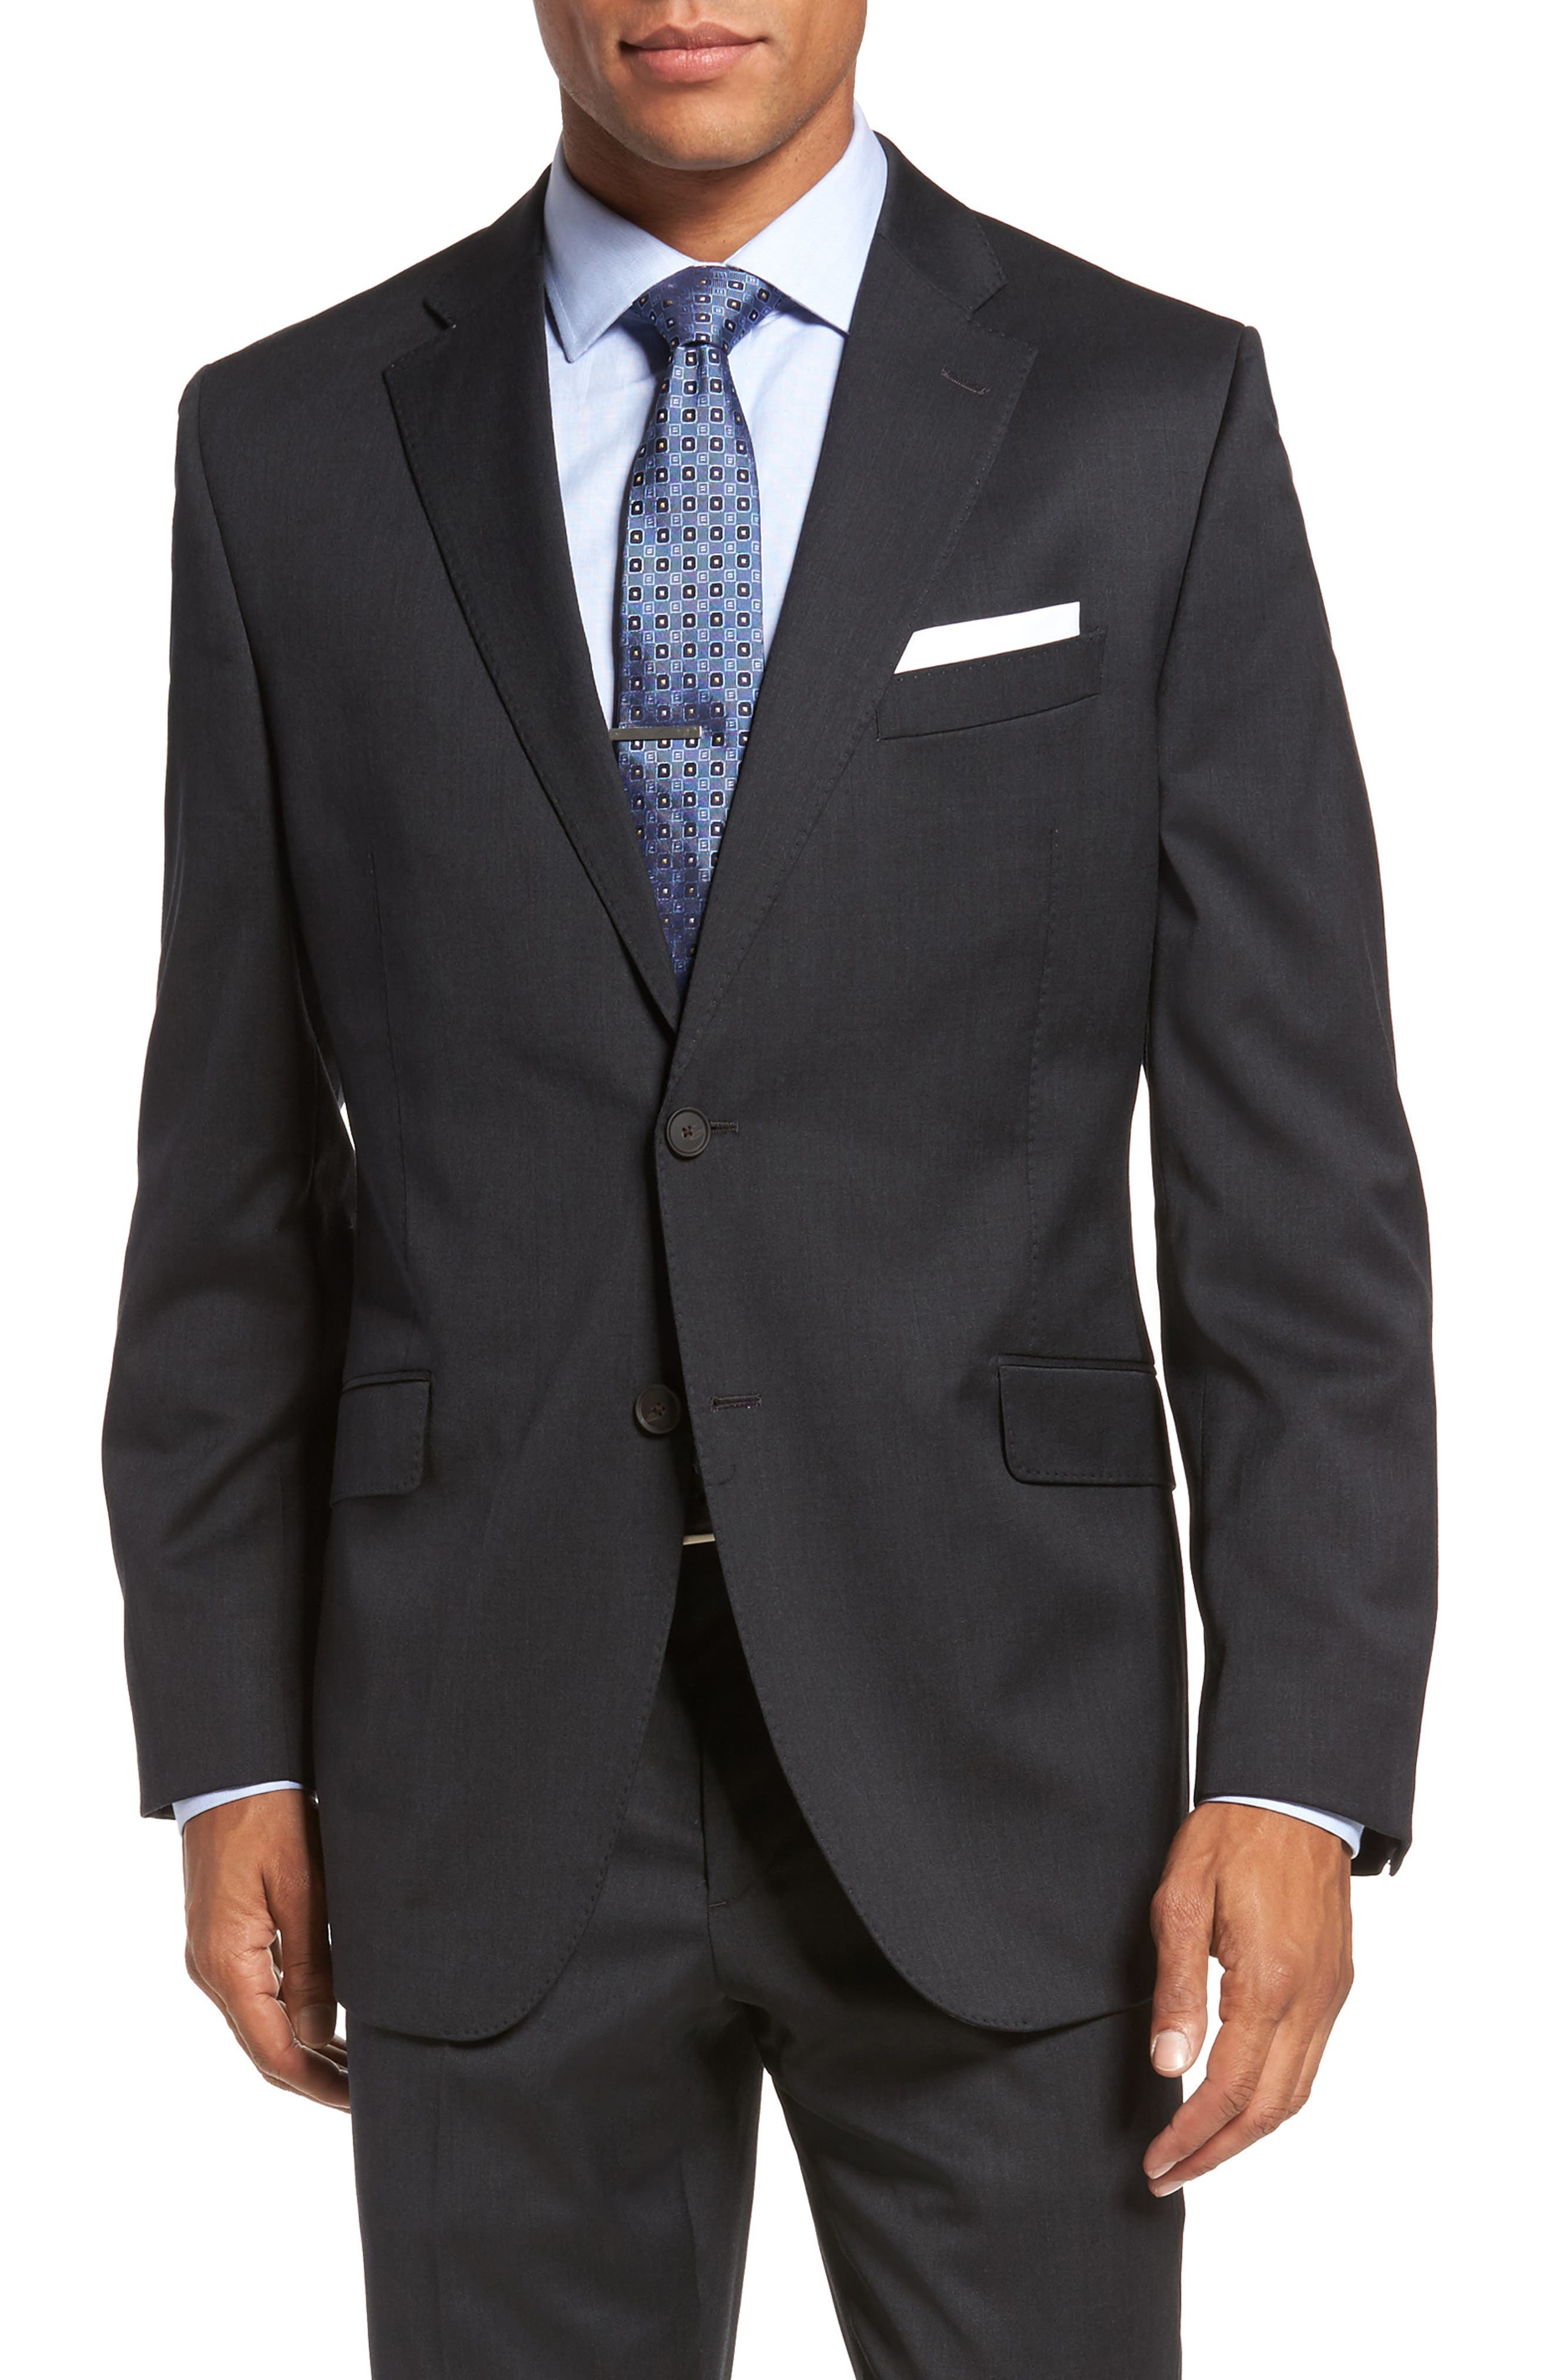 Keidis Aim Classic Fit Stretch Wool Suit,                             Alternate thumbnail 5, color,                             Charcoal